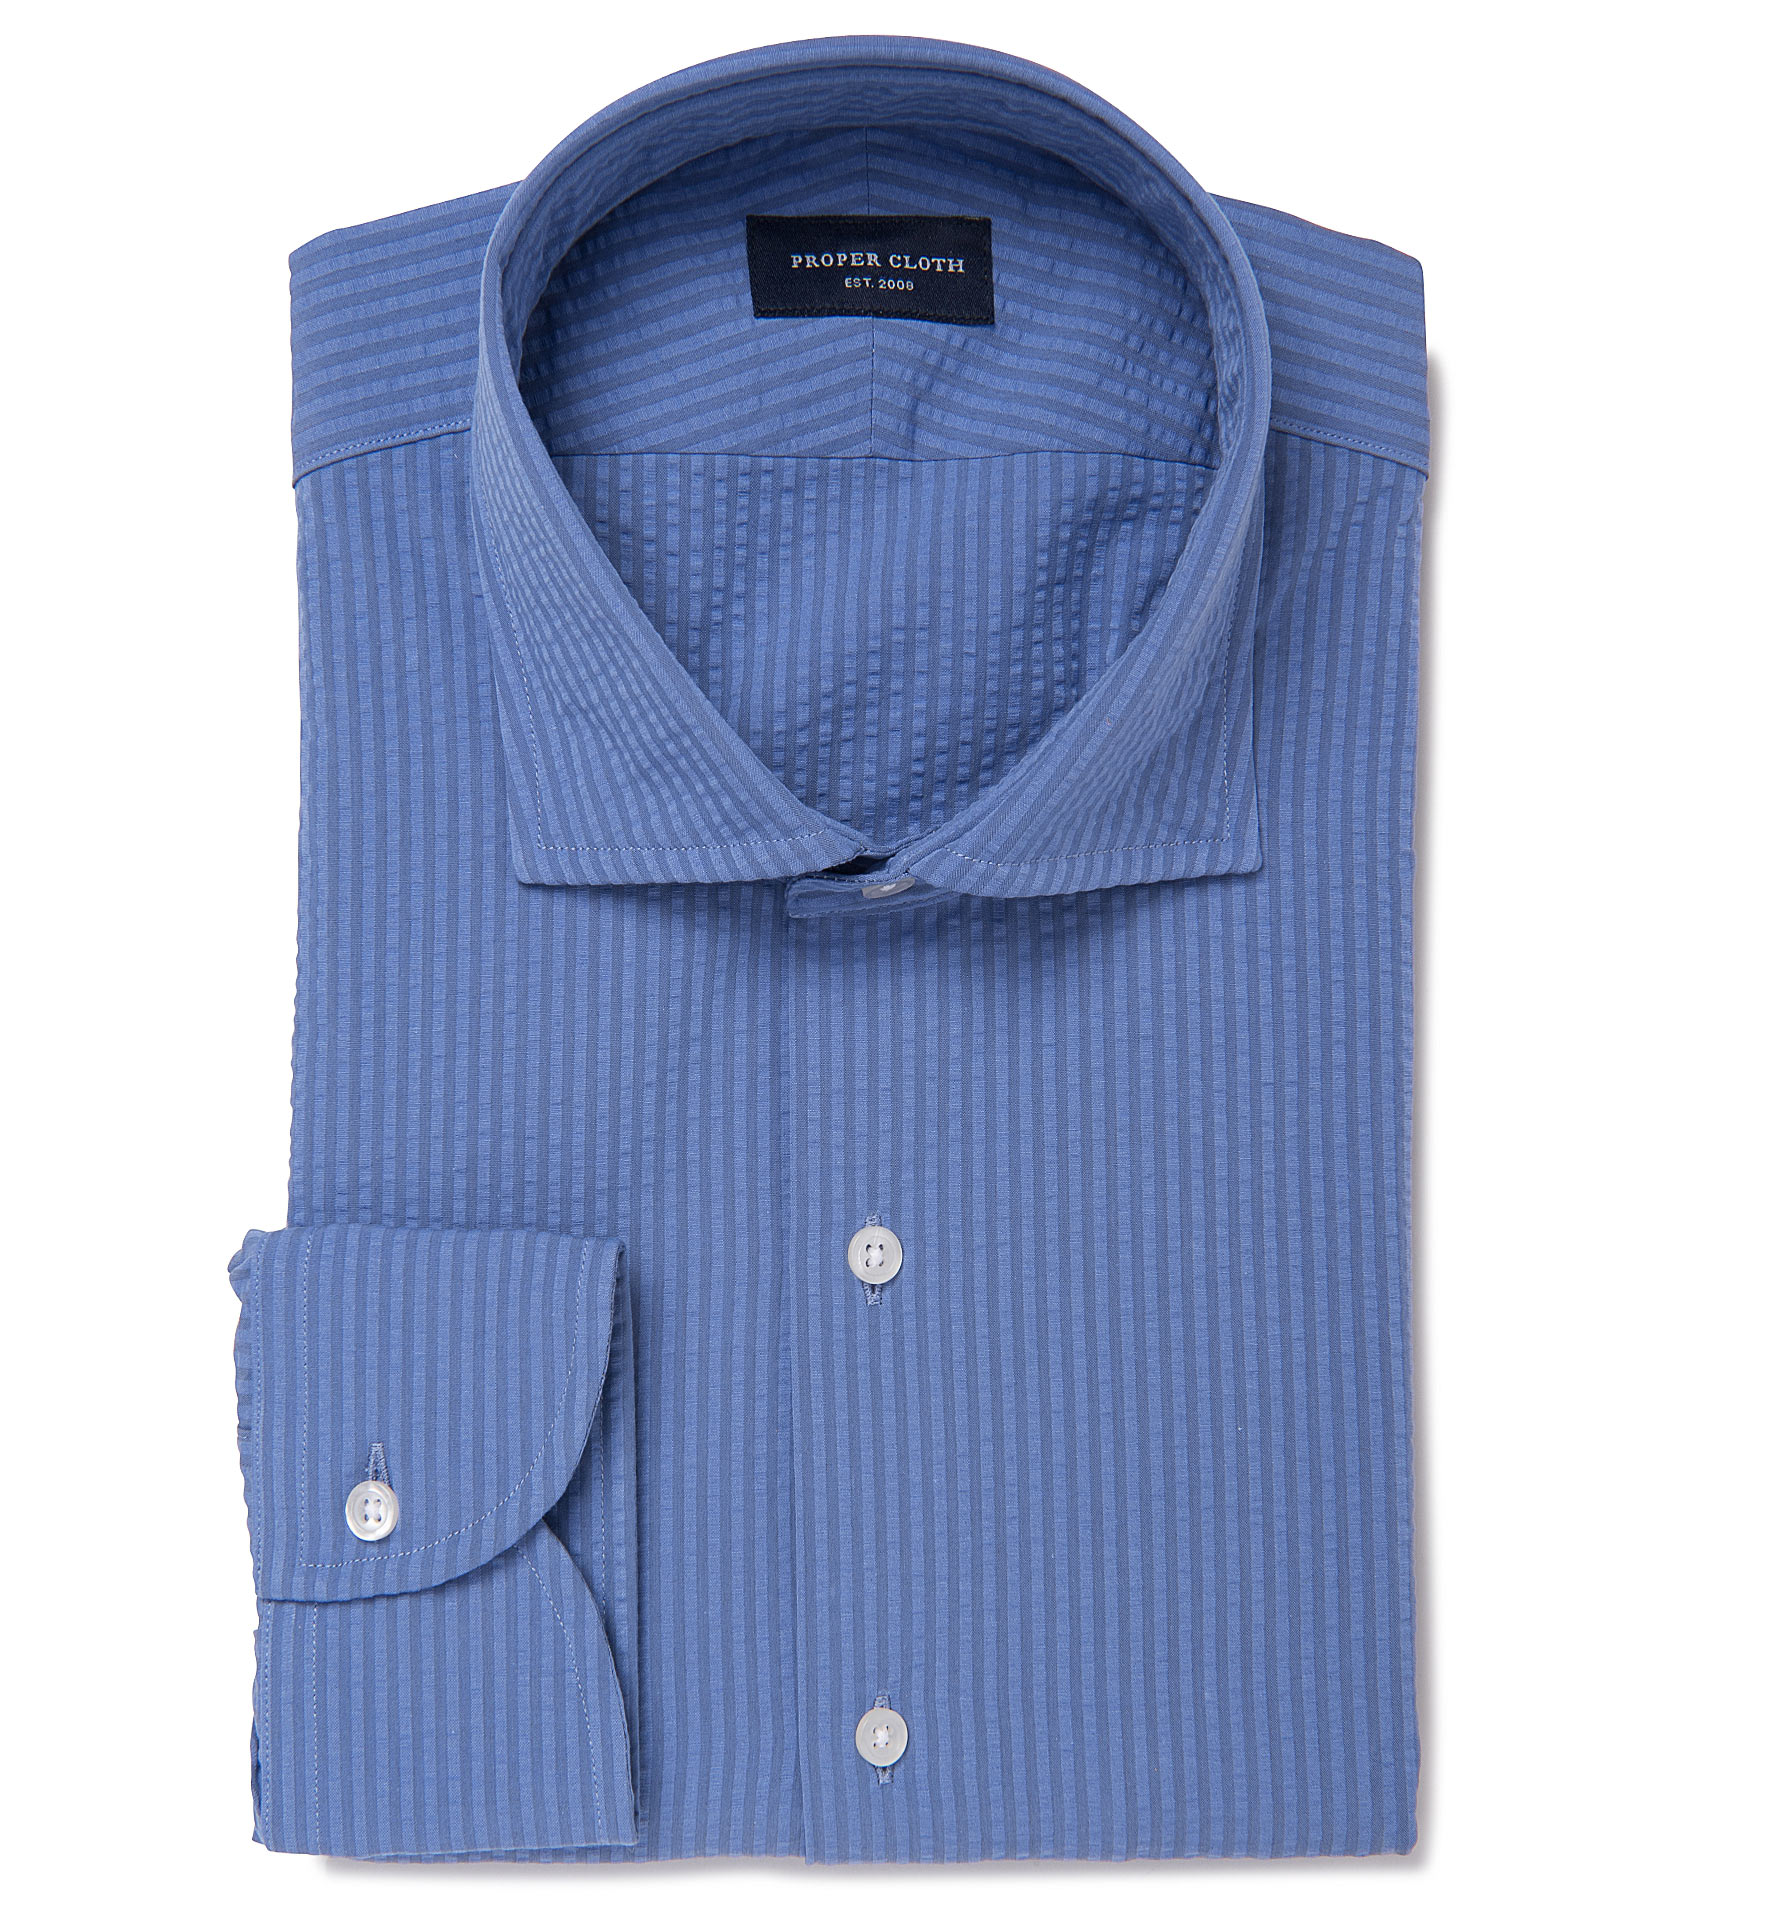 Portuguese blue seersucker dress shirt by proper cloth for Proper cloth custom shirt price